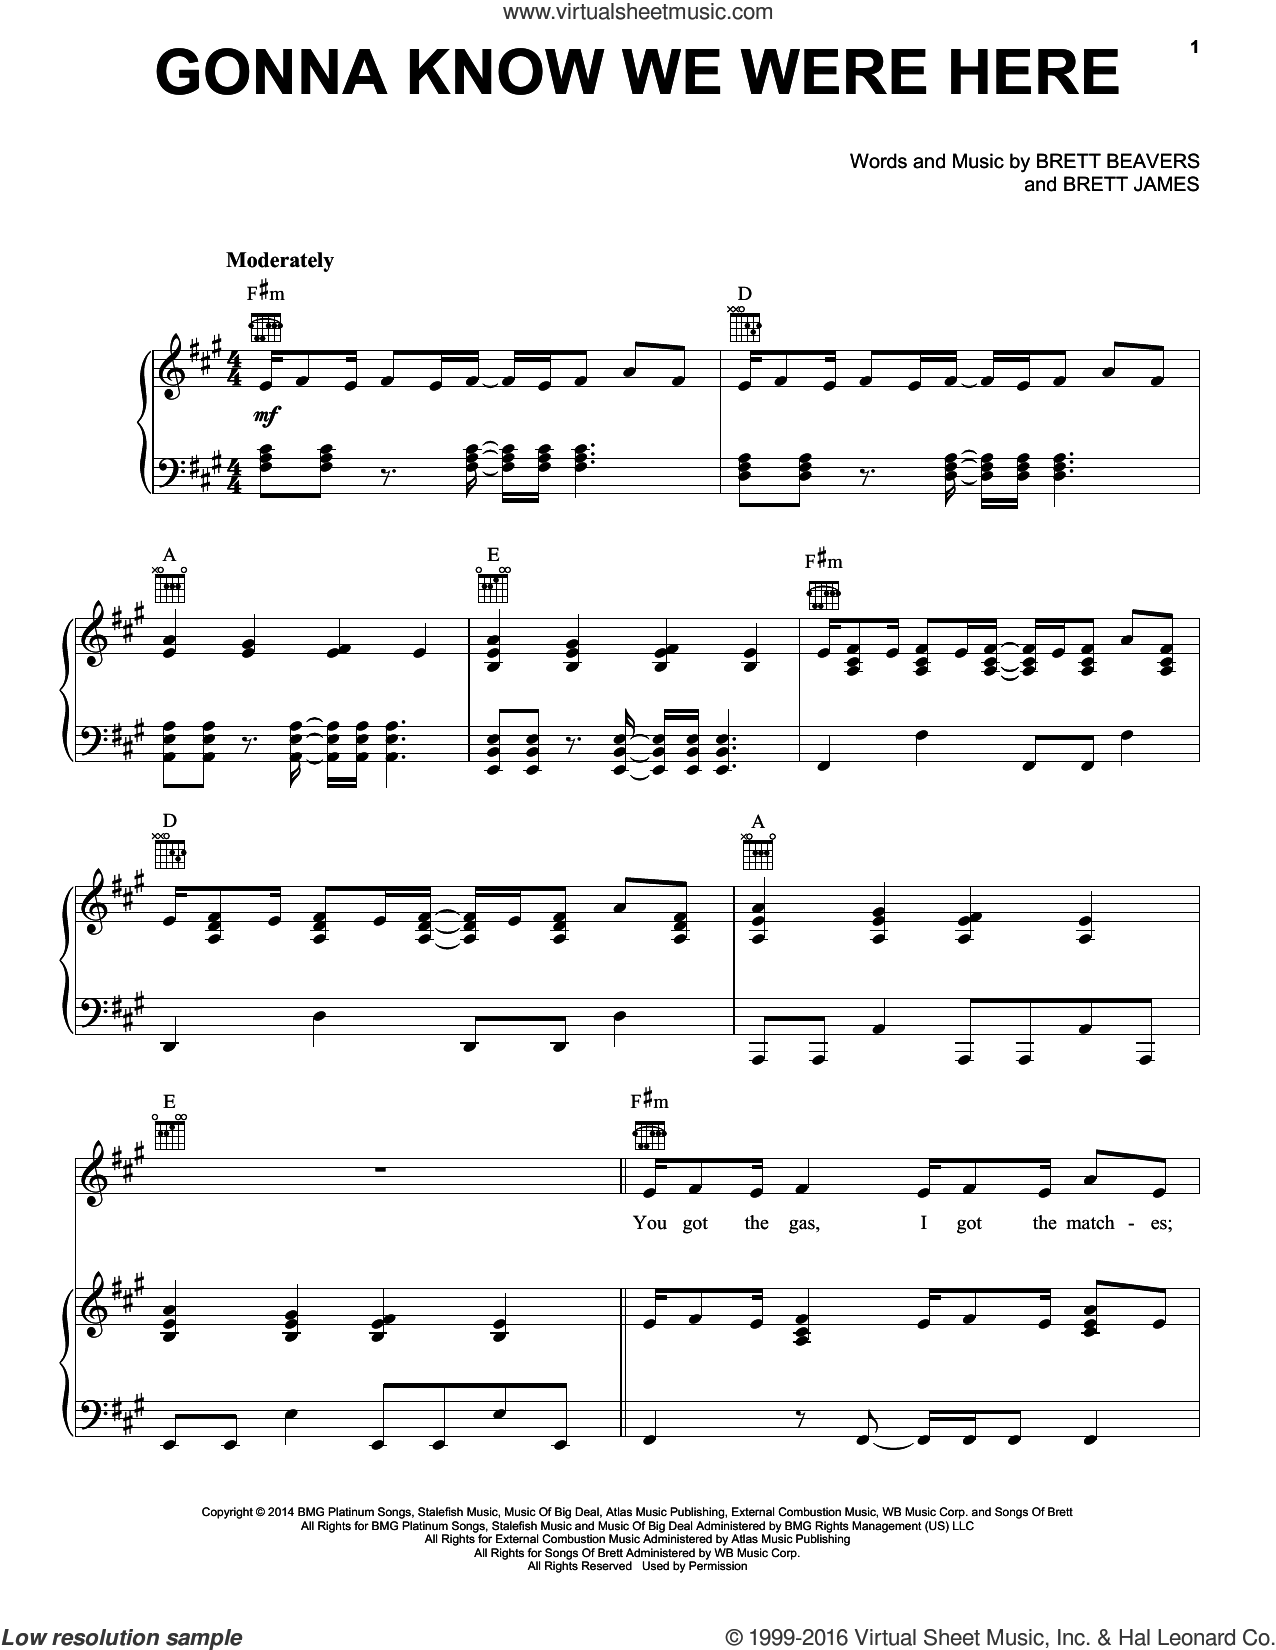 Gonna Know We Were Here sheet music for voice, piano or guitar by Brett James, Jason Aldean and Brett Beavers. Score Image Preview.